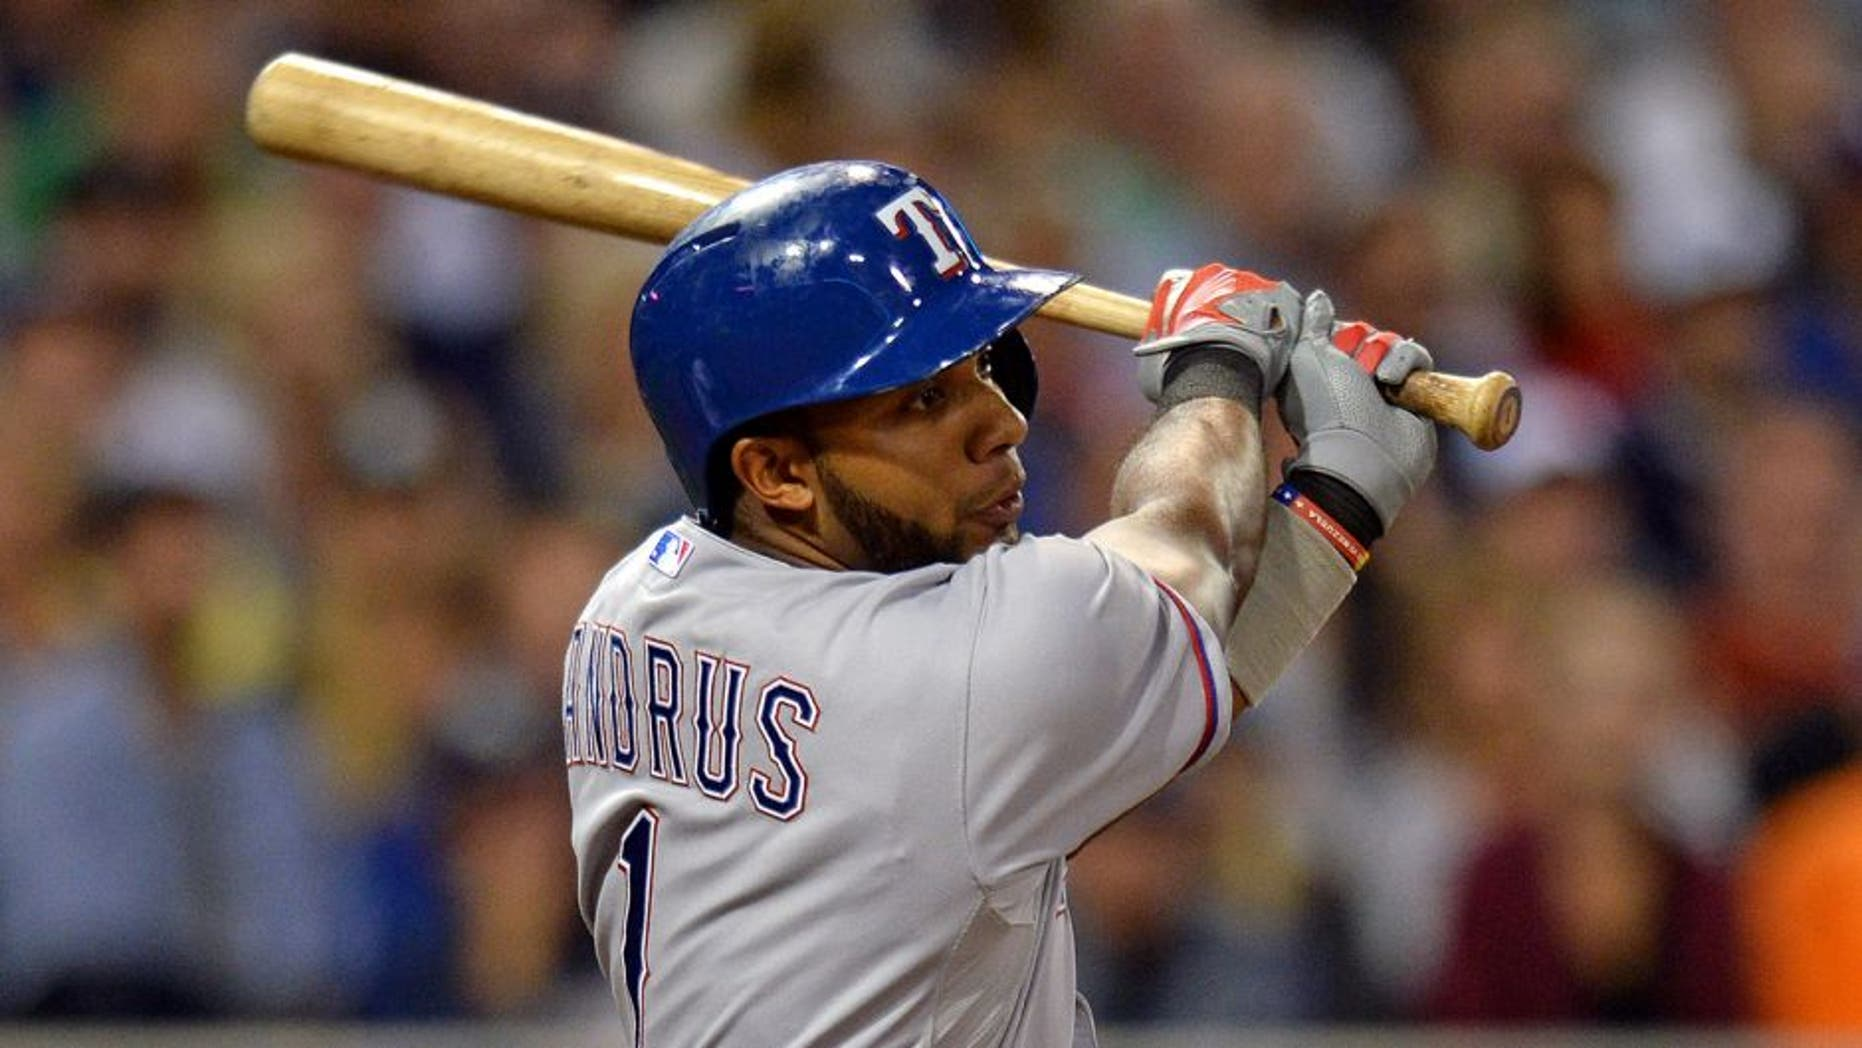 Sep 1, 2015; San Diego, CA, USA; Texas Rangers shortstop Elvis Andrus (1) hits an RBI single during the seventh inning against the San Diego Padres at Petco Park. Mandatory Credit: Jake Roth-USA TODAY Sports